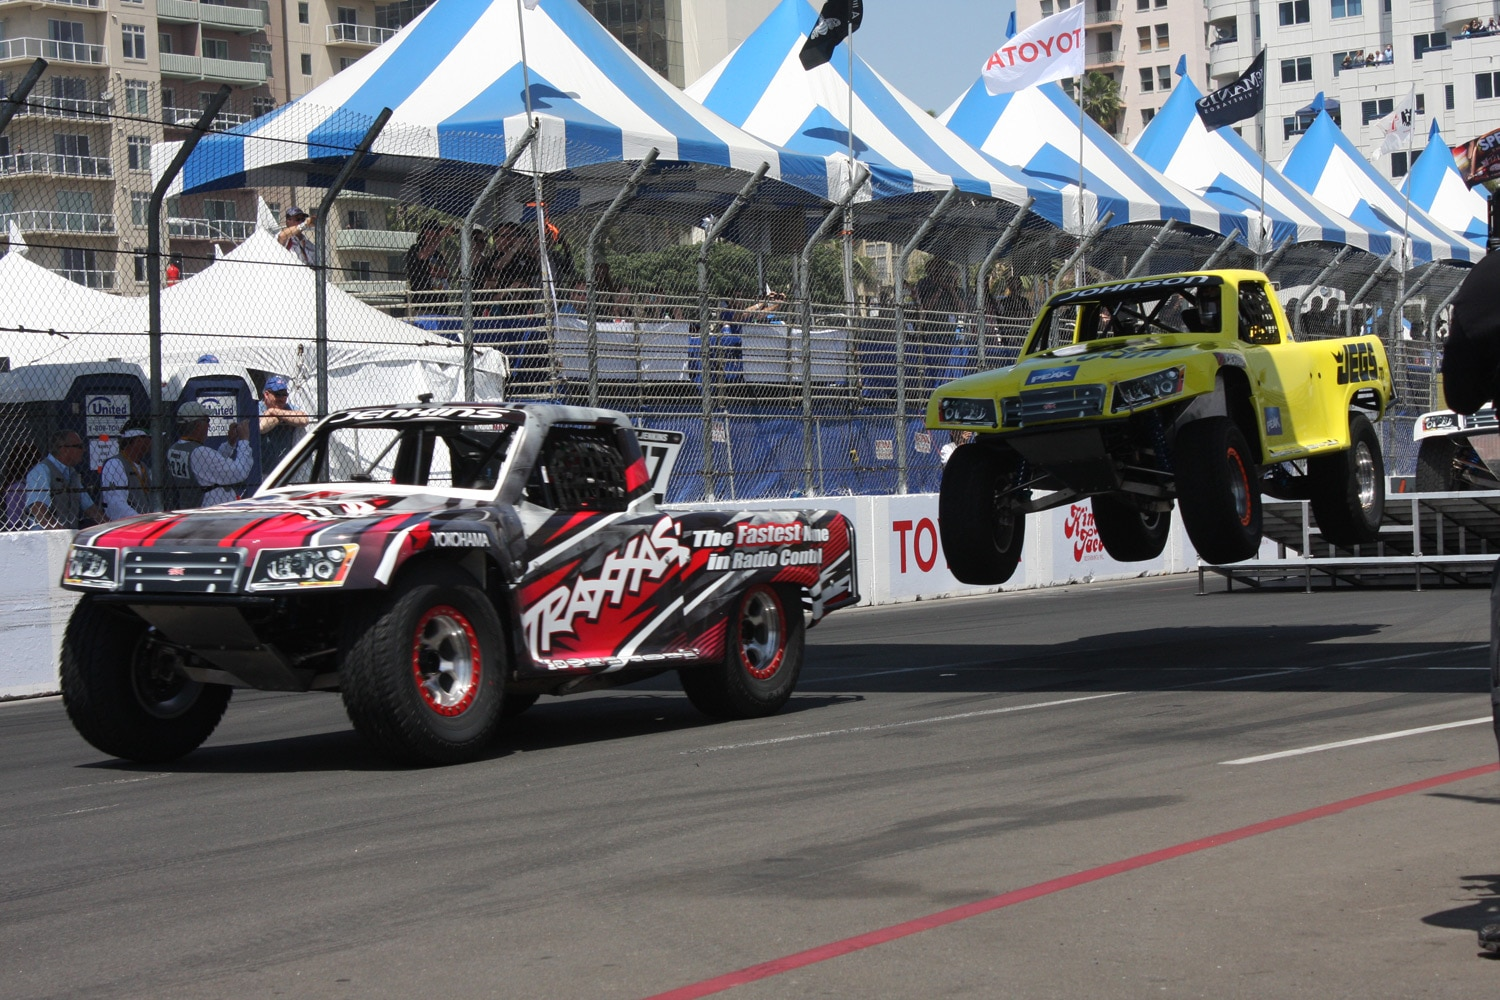 1304OR 08+Robby Gordon SST Stadium Super Trucks 2013 Long Beach Grand Prix Ricky Johnson